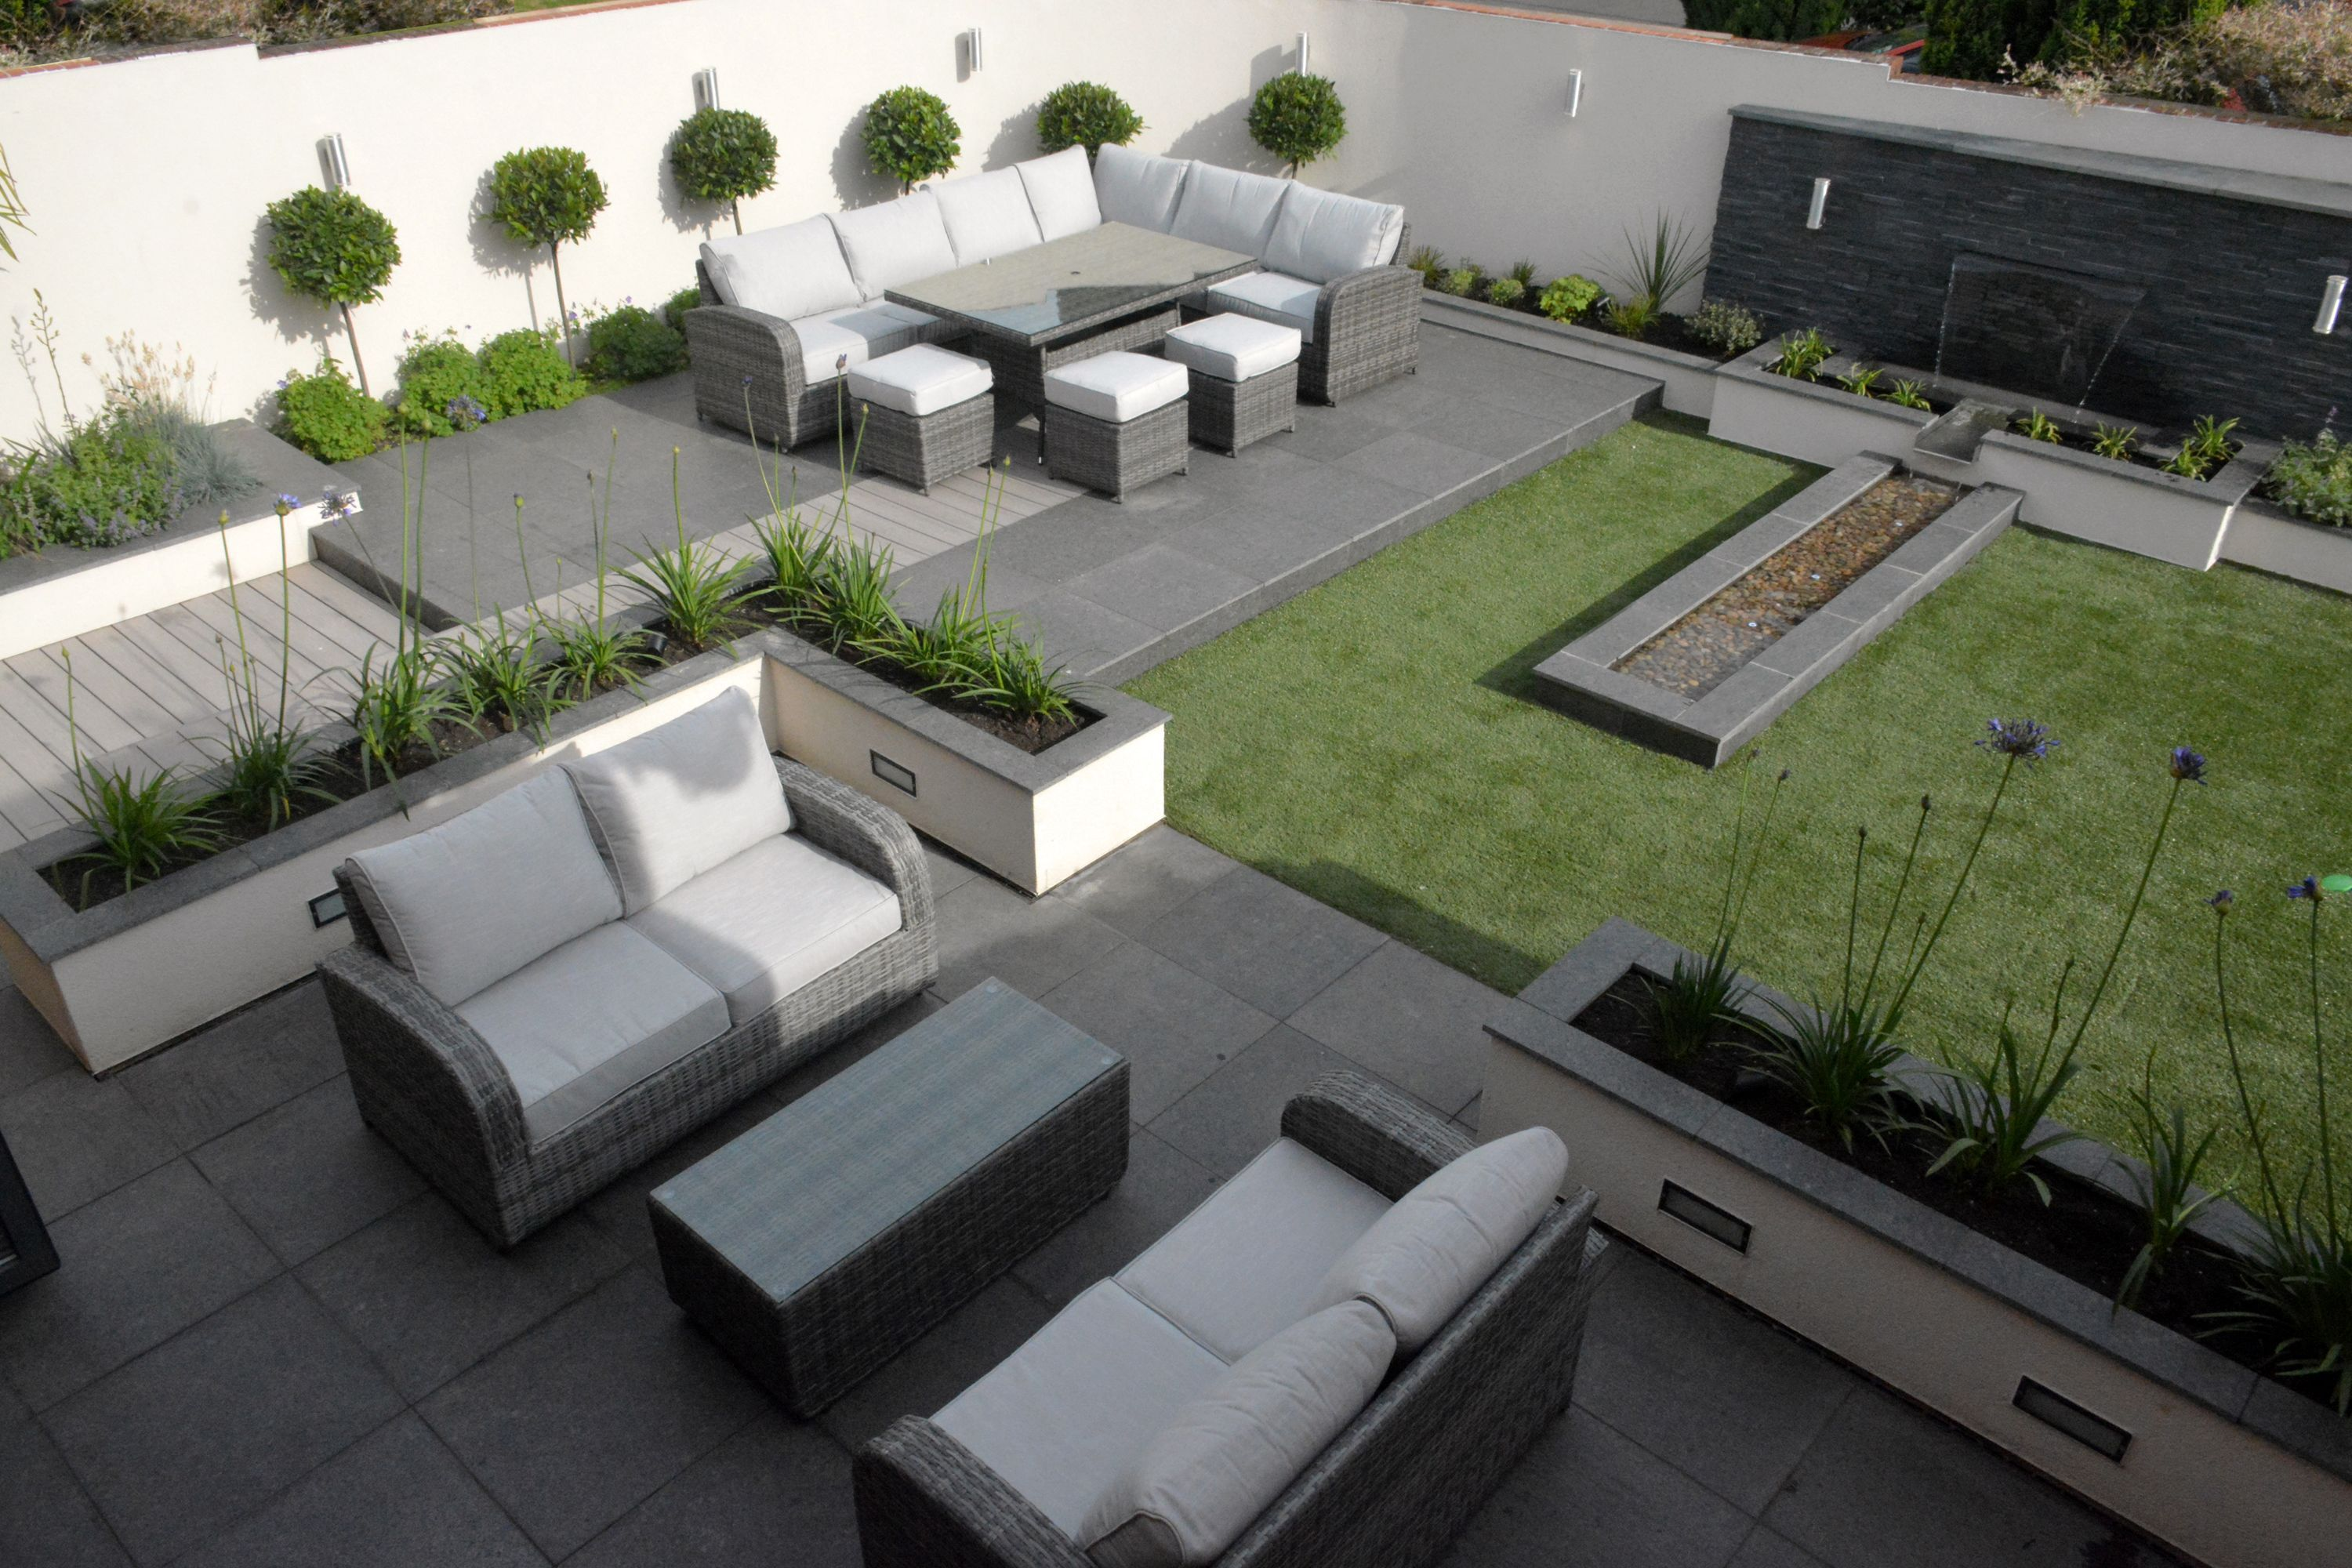 Contemporary garden with Granite paving and composite decking